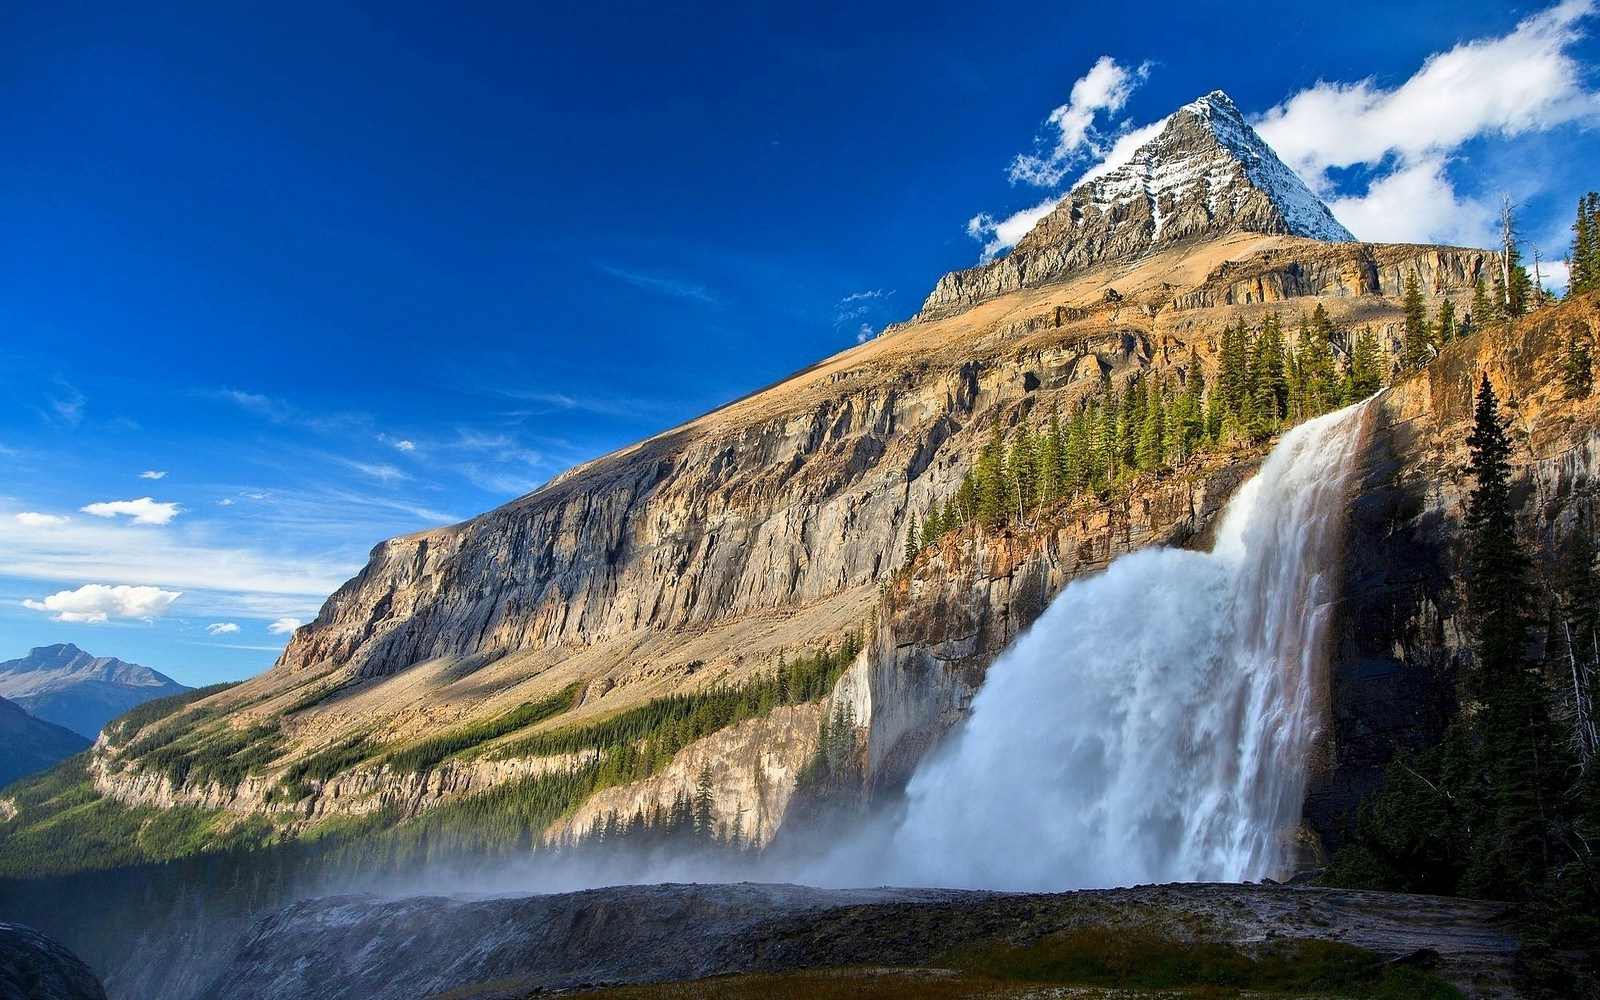 3d Wallpapers Hd Full Hd 1080p 1920x1080 Landscape Nature Canada Waterfall Mountain Forest